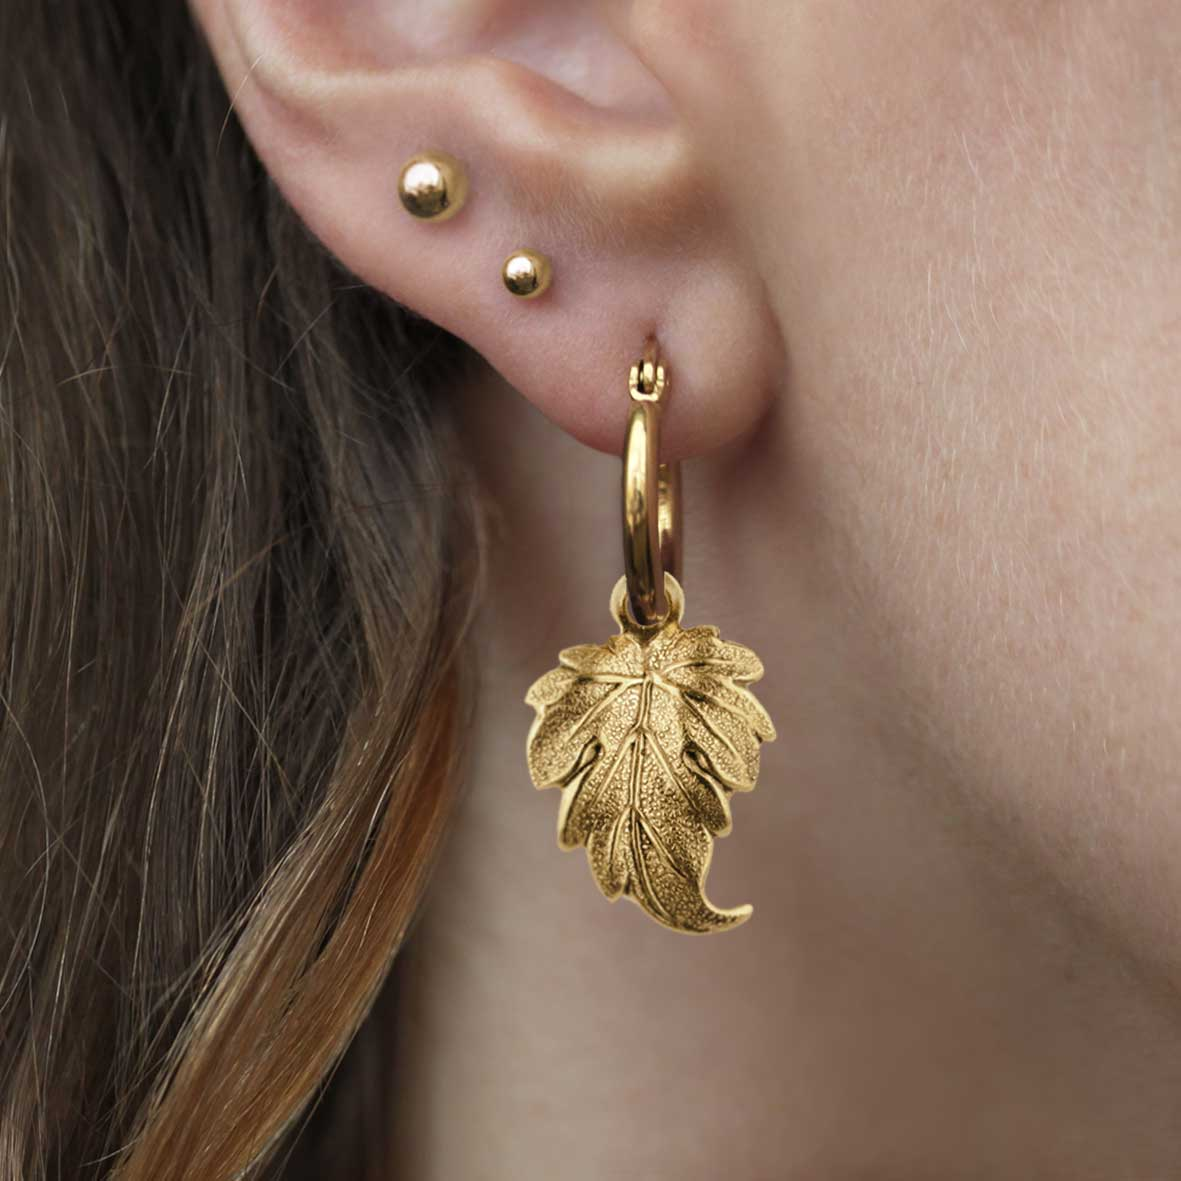 IVY. Winter Leaf Hoop Earrings - Gold